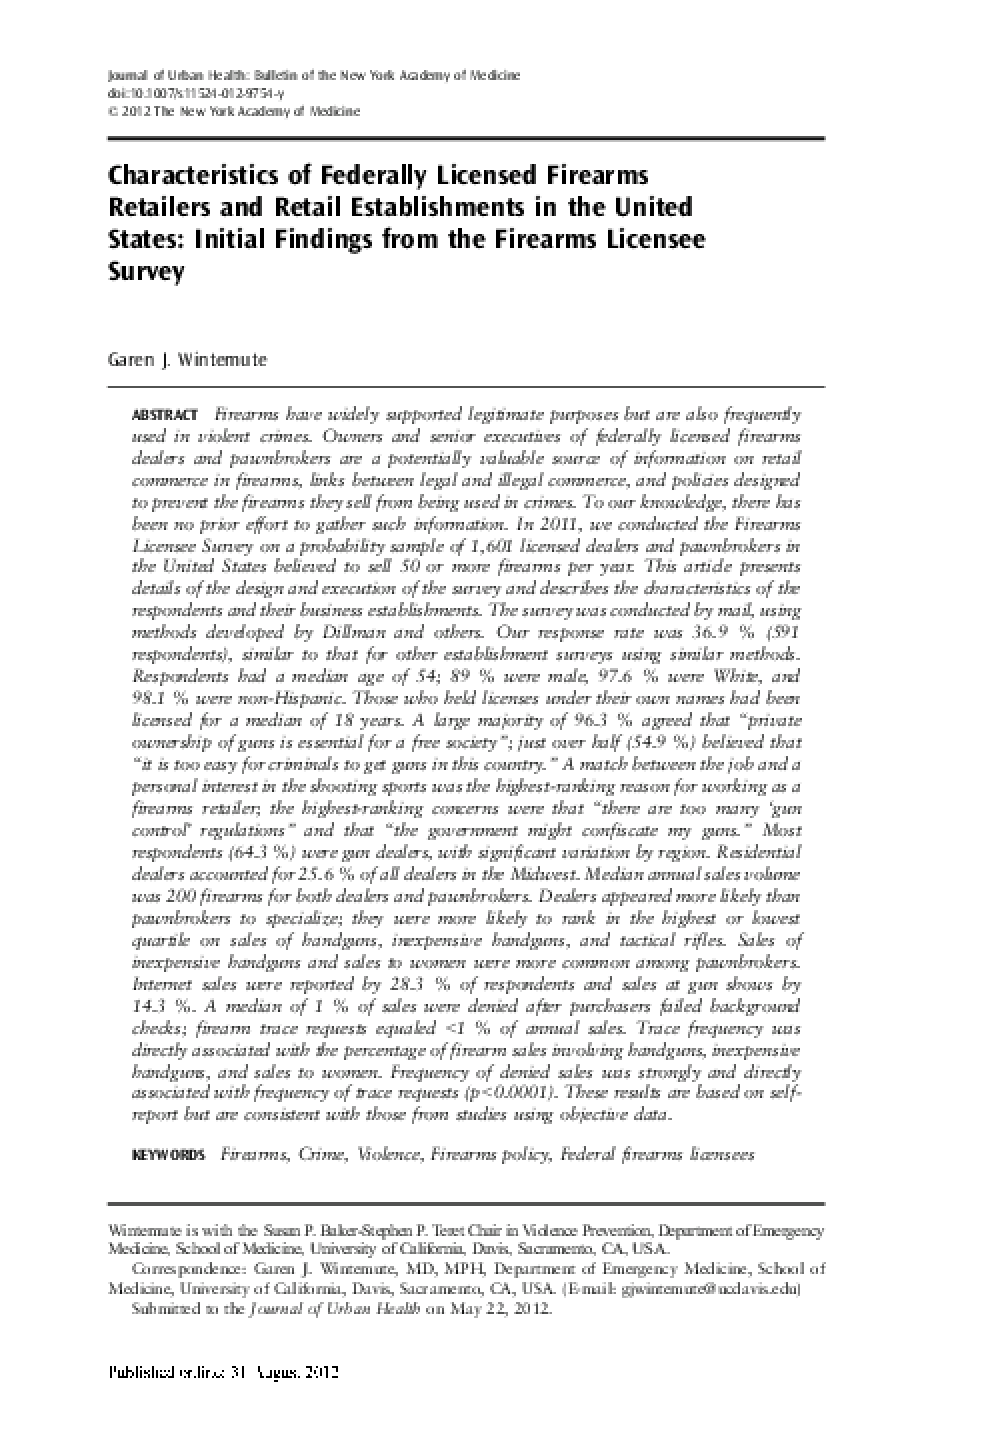 Characteristics of Federally Licensed Firearms Retailers and Retail Establishments in the United States: Initial Findings from the Firearms Licensee Survey